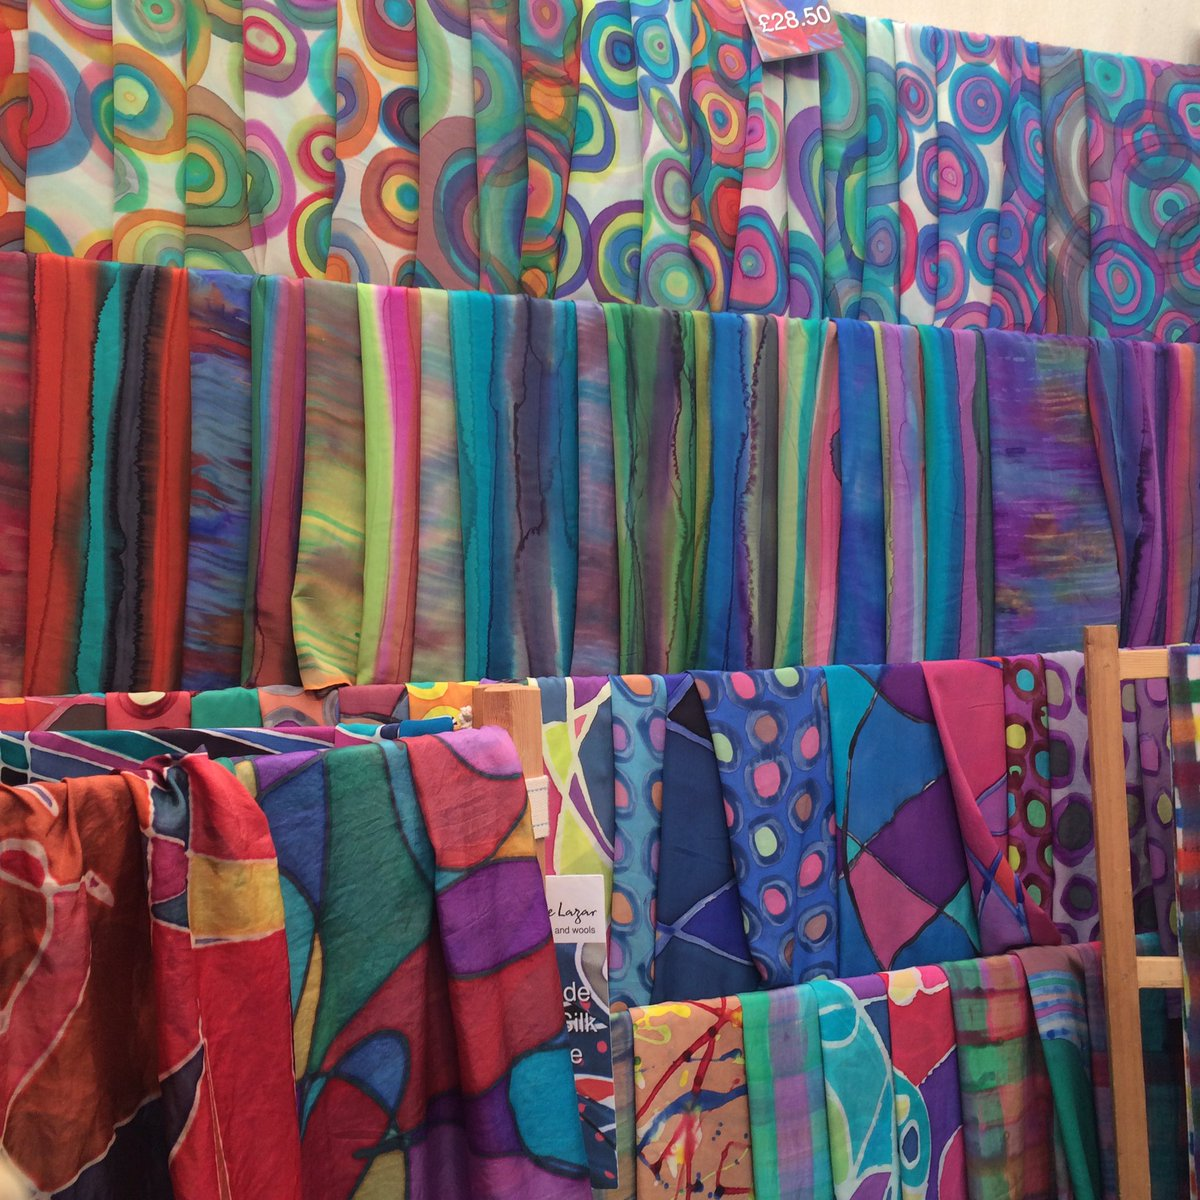 You can never have too many scarves - only one day left   CraftInFocuspic.twitter.com r1NikSJLxB 4223bc9bf0